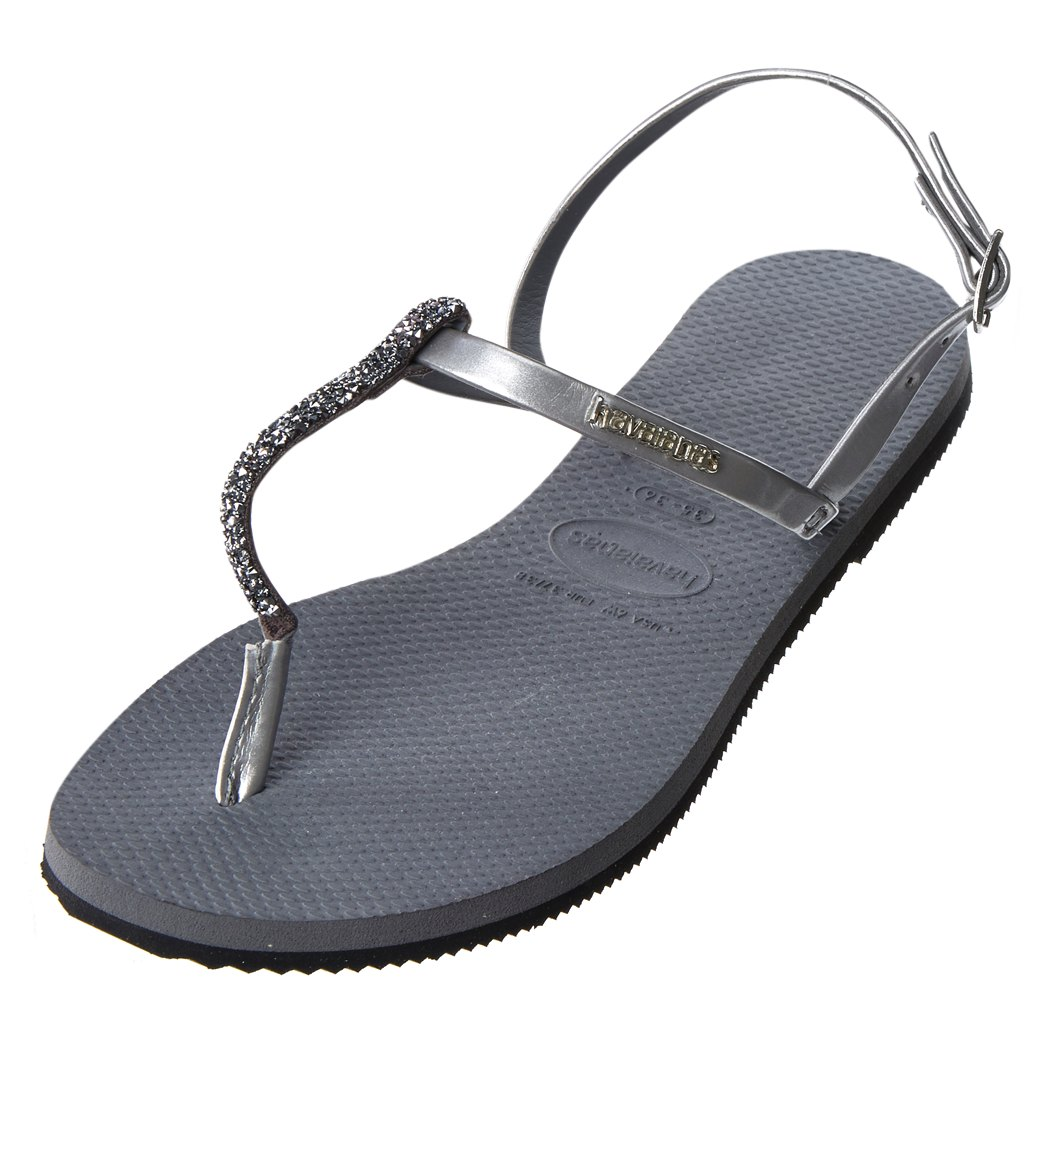 942f97687 Havaianas Women s You Riviera Crystal Sandal at SwimOutlet.com - Free  Shipping